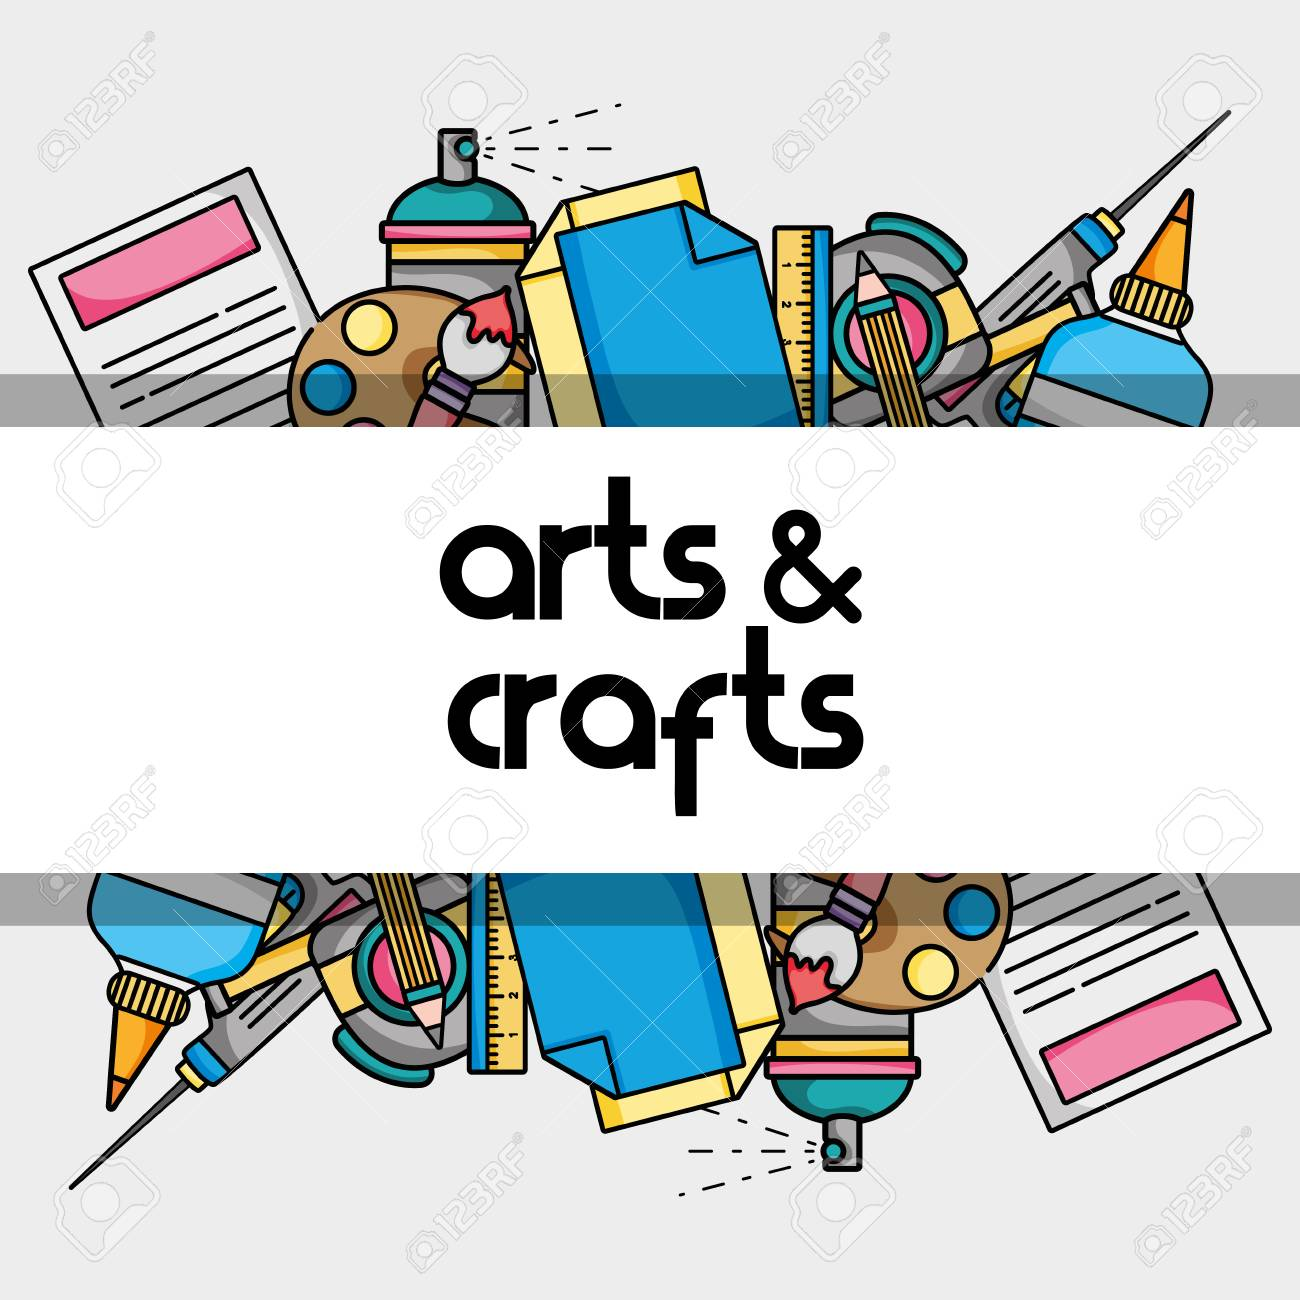 Art And Craft Creative Object Design Royalty Free Cliparts Vectors And Stock Illustration Image 90277090